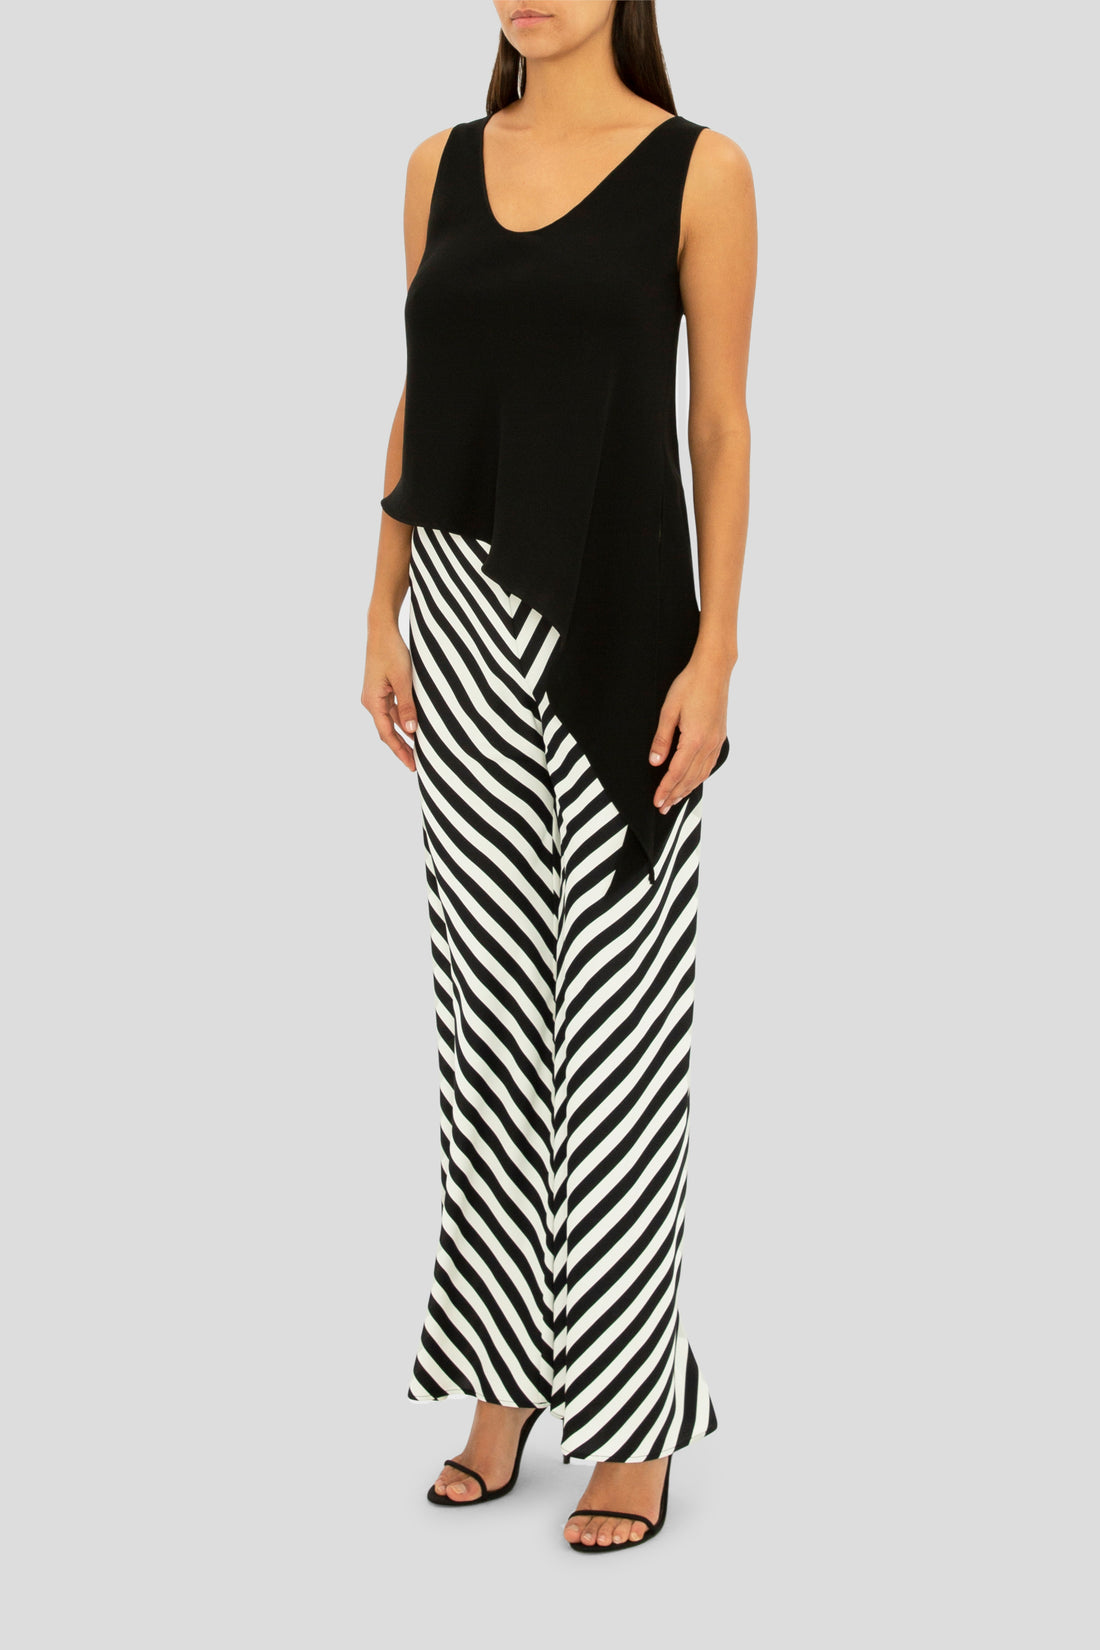 THE BLACK STRIPE FLIRT PALAZZO PANT